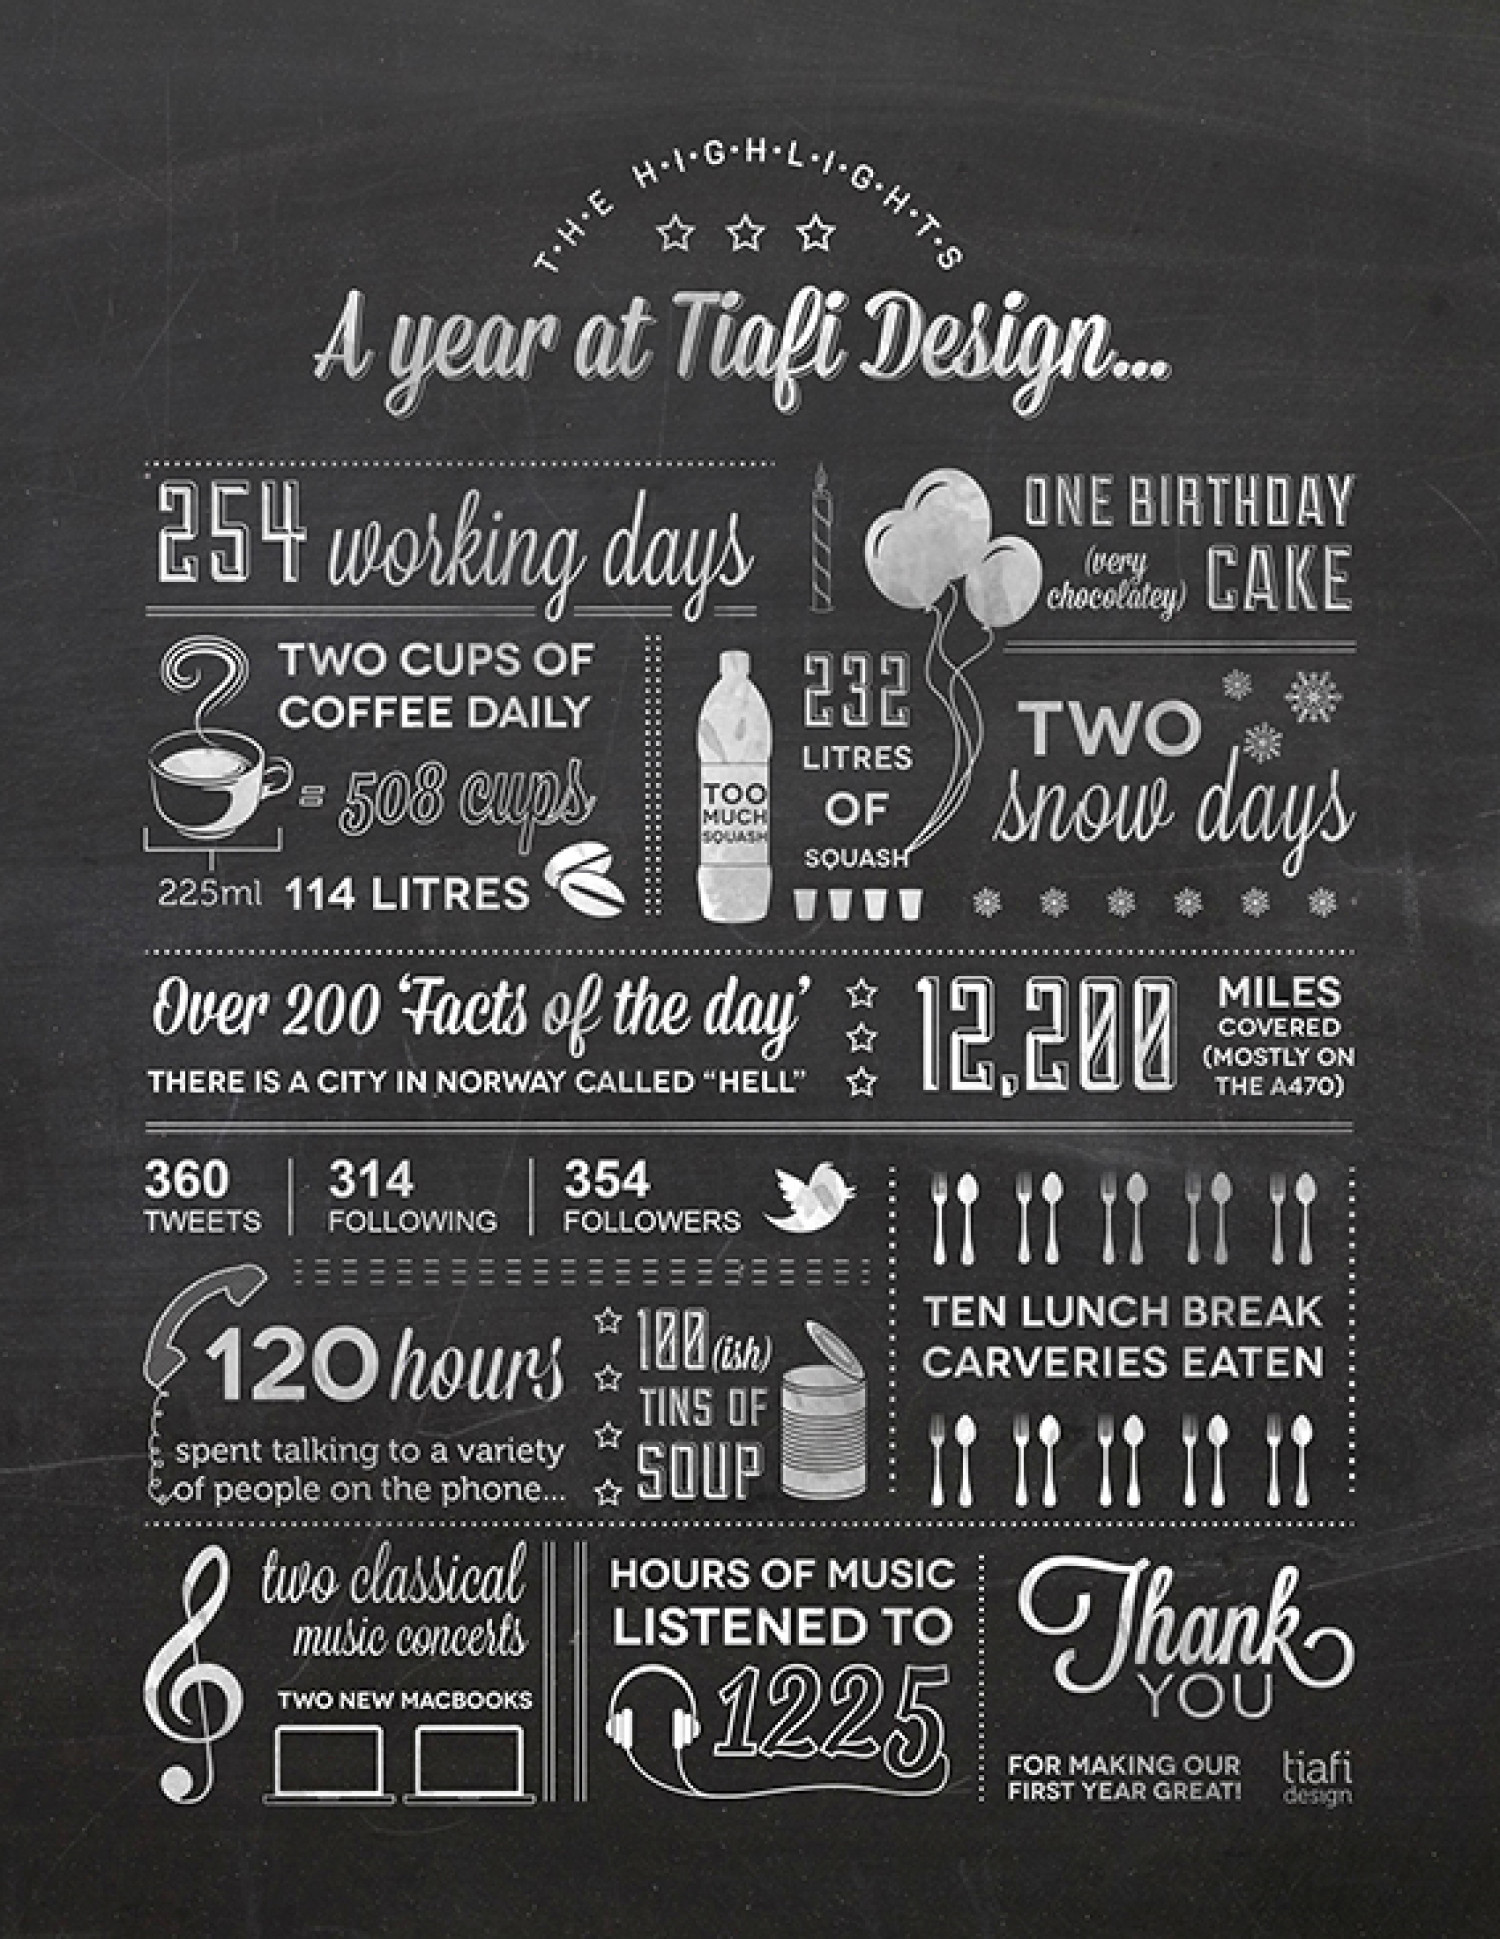 Tiafi Design: One Year On Infographic